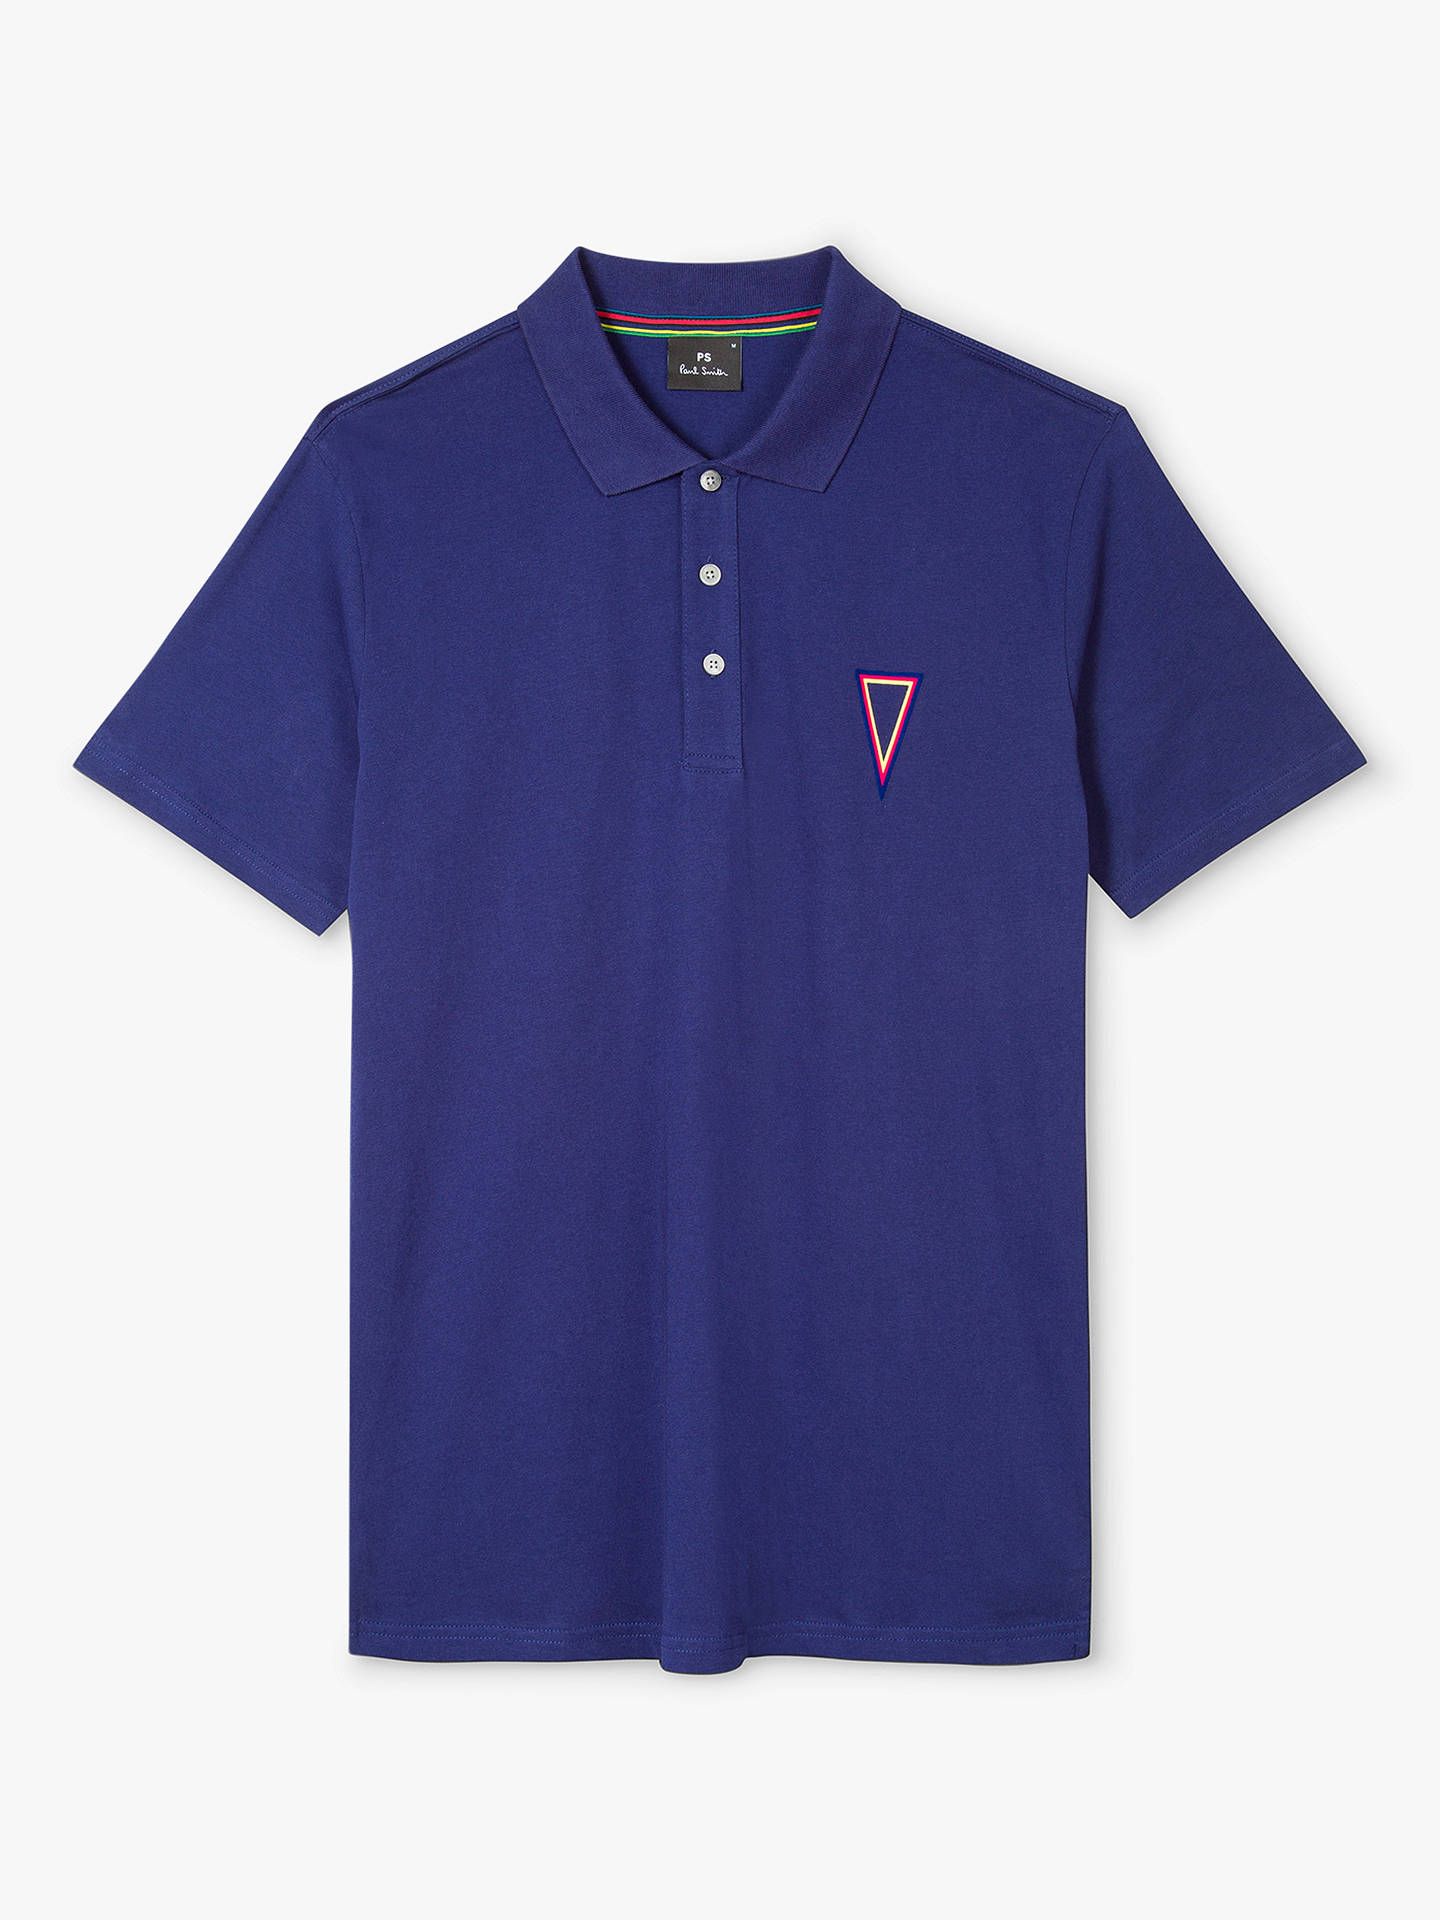 BuyPaul Smith Pendant Jersey Polo, Blue, S Online at johnlewis.com